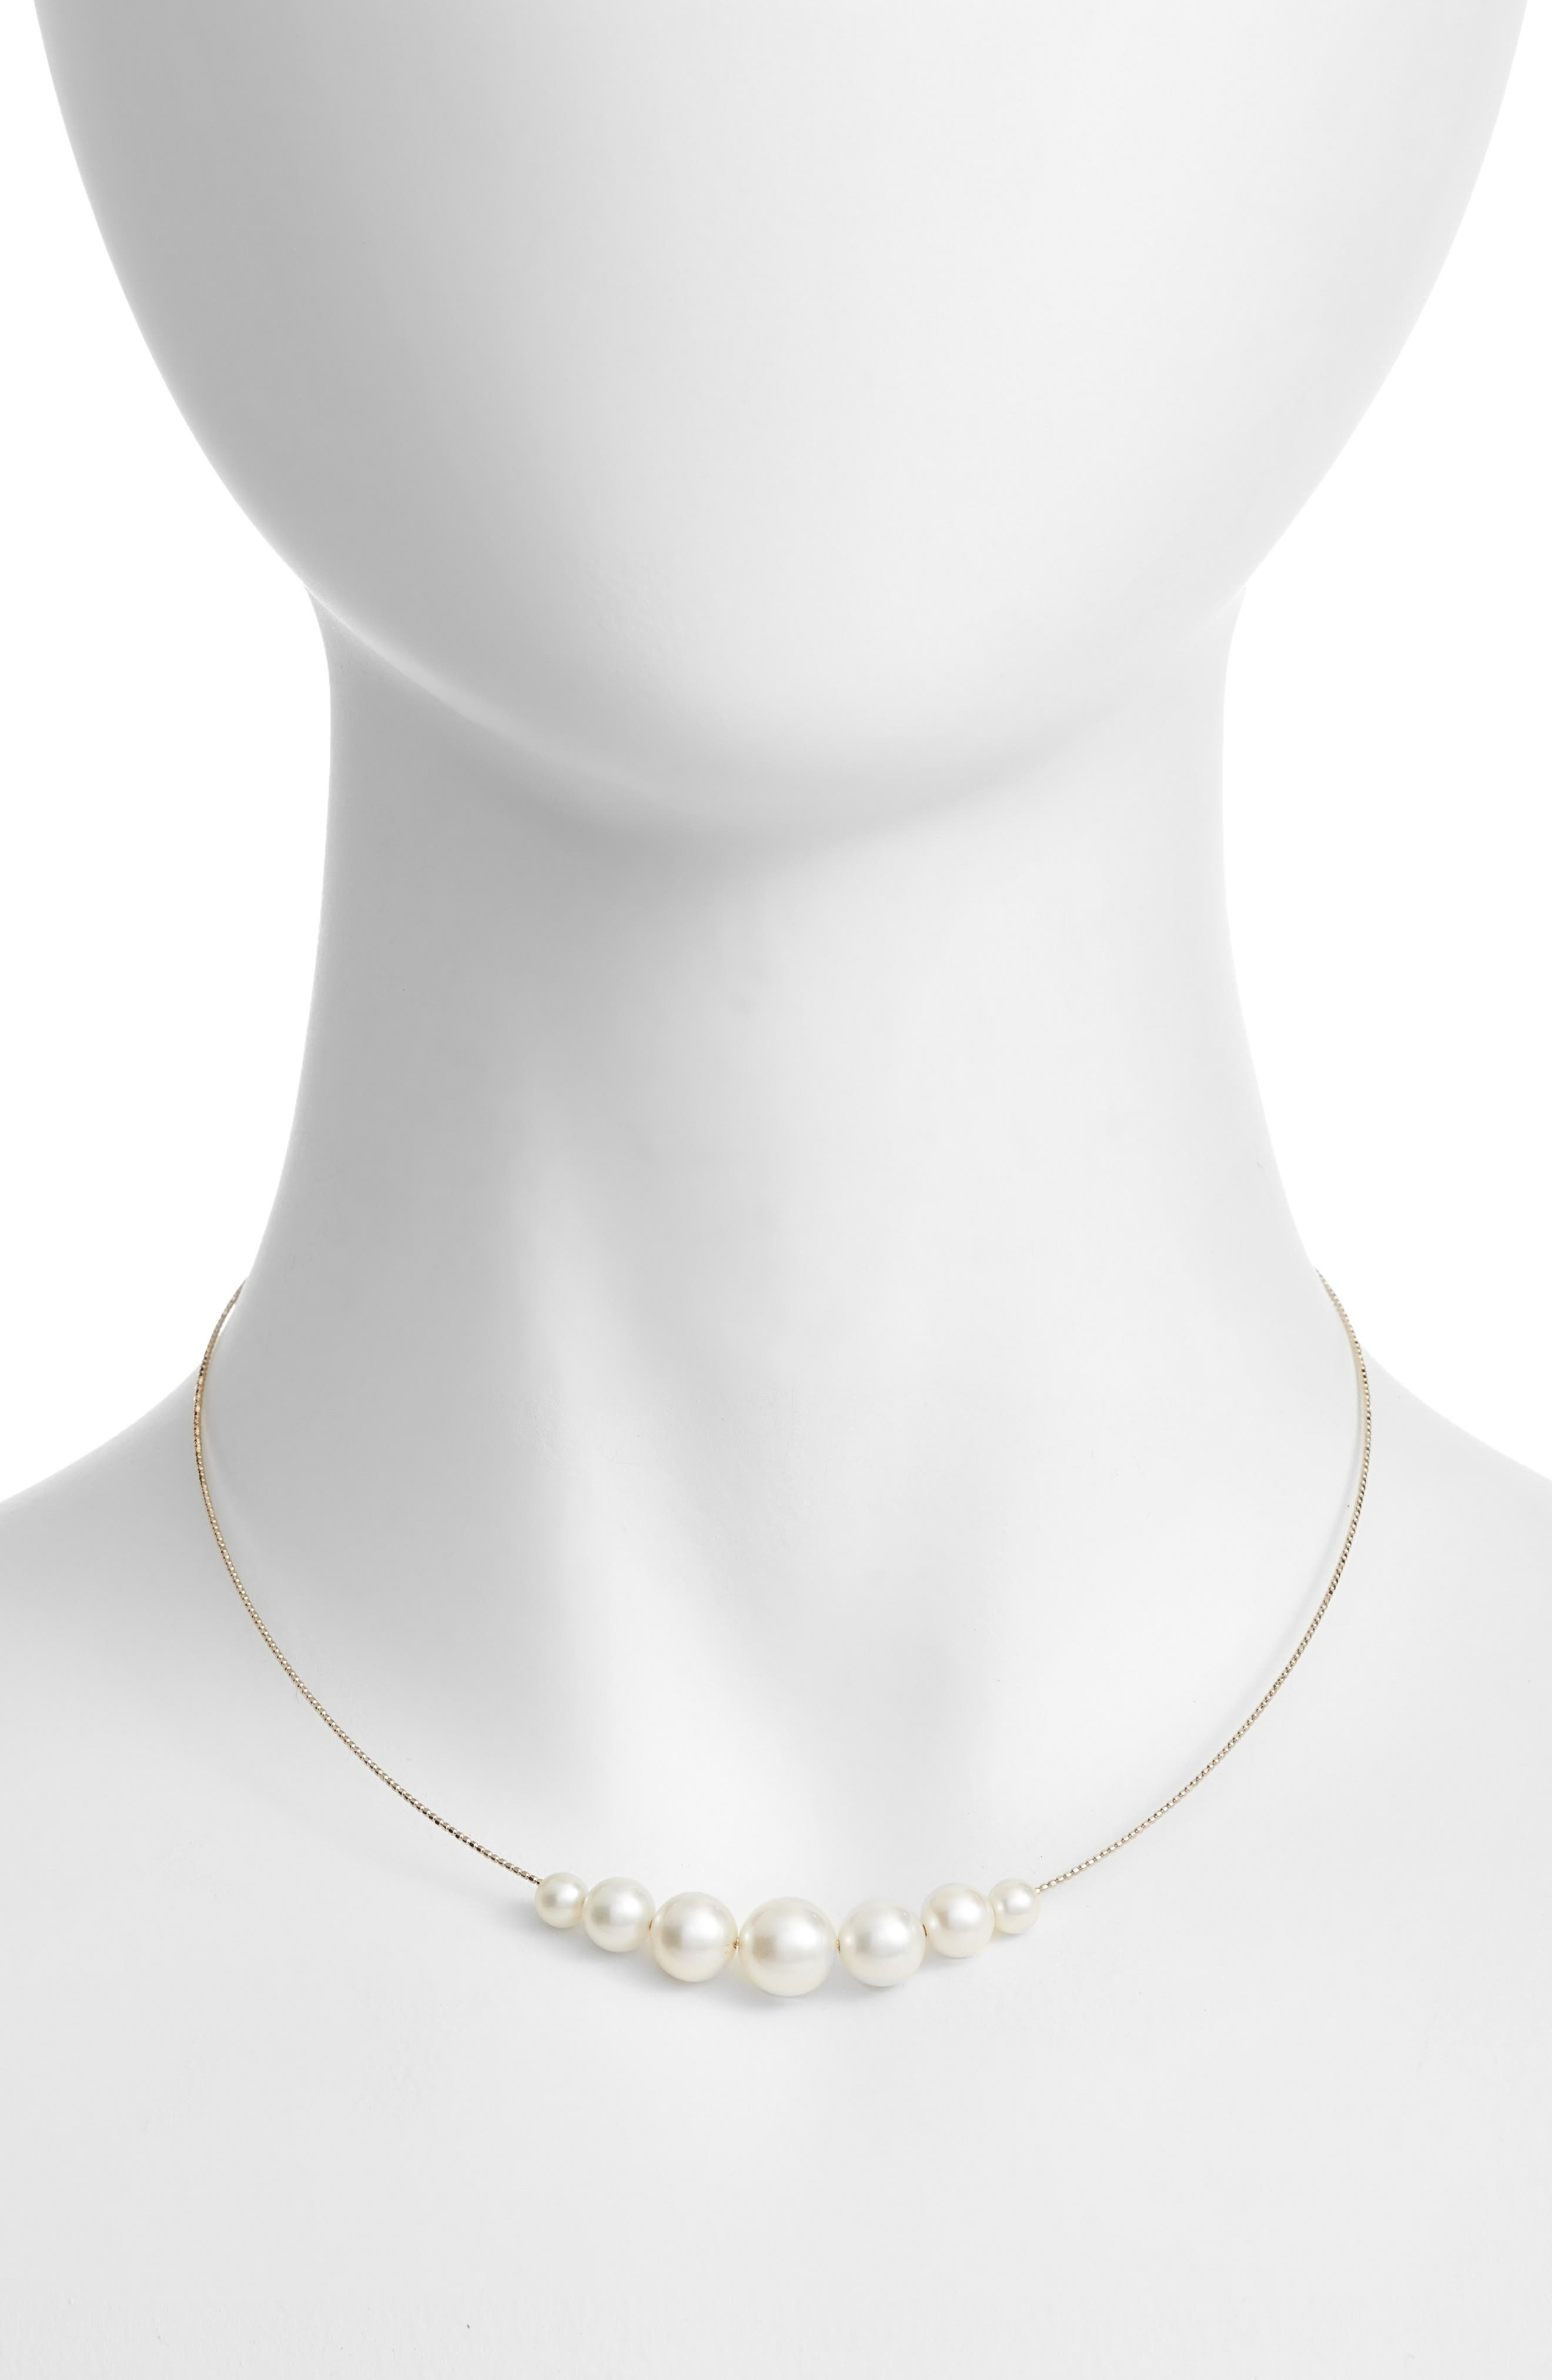 Poppy Finch Pearl Choker Necklace